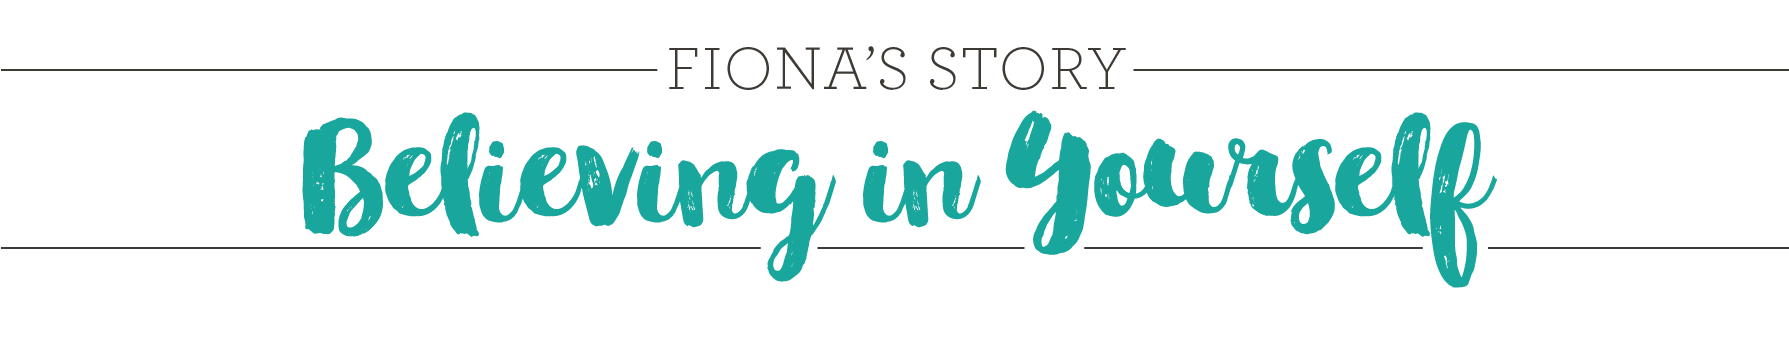 Fiona's Story Believe in Yourself